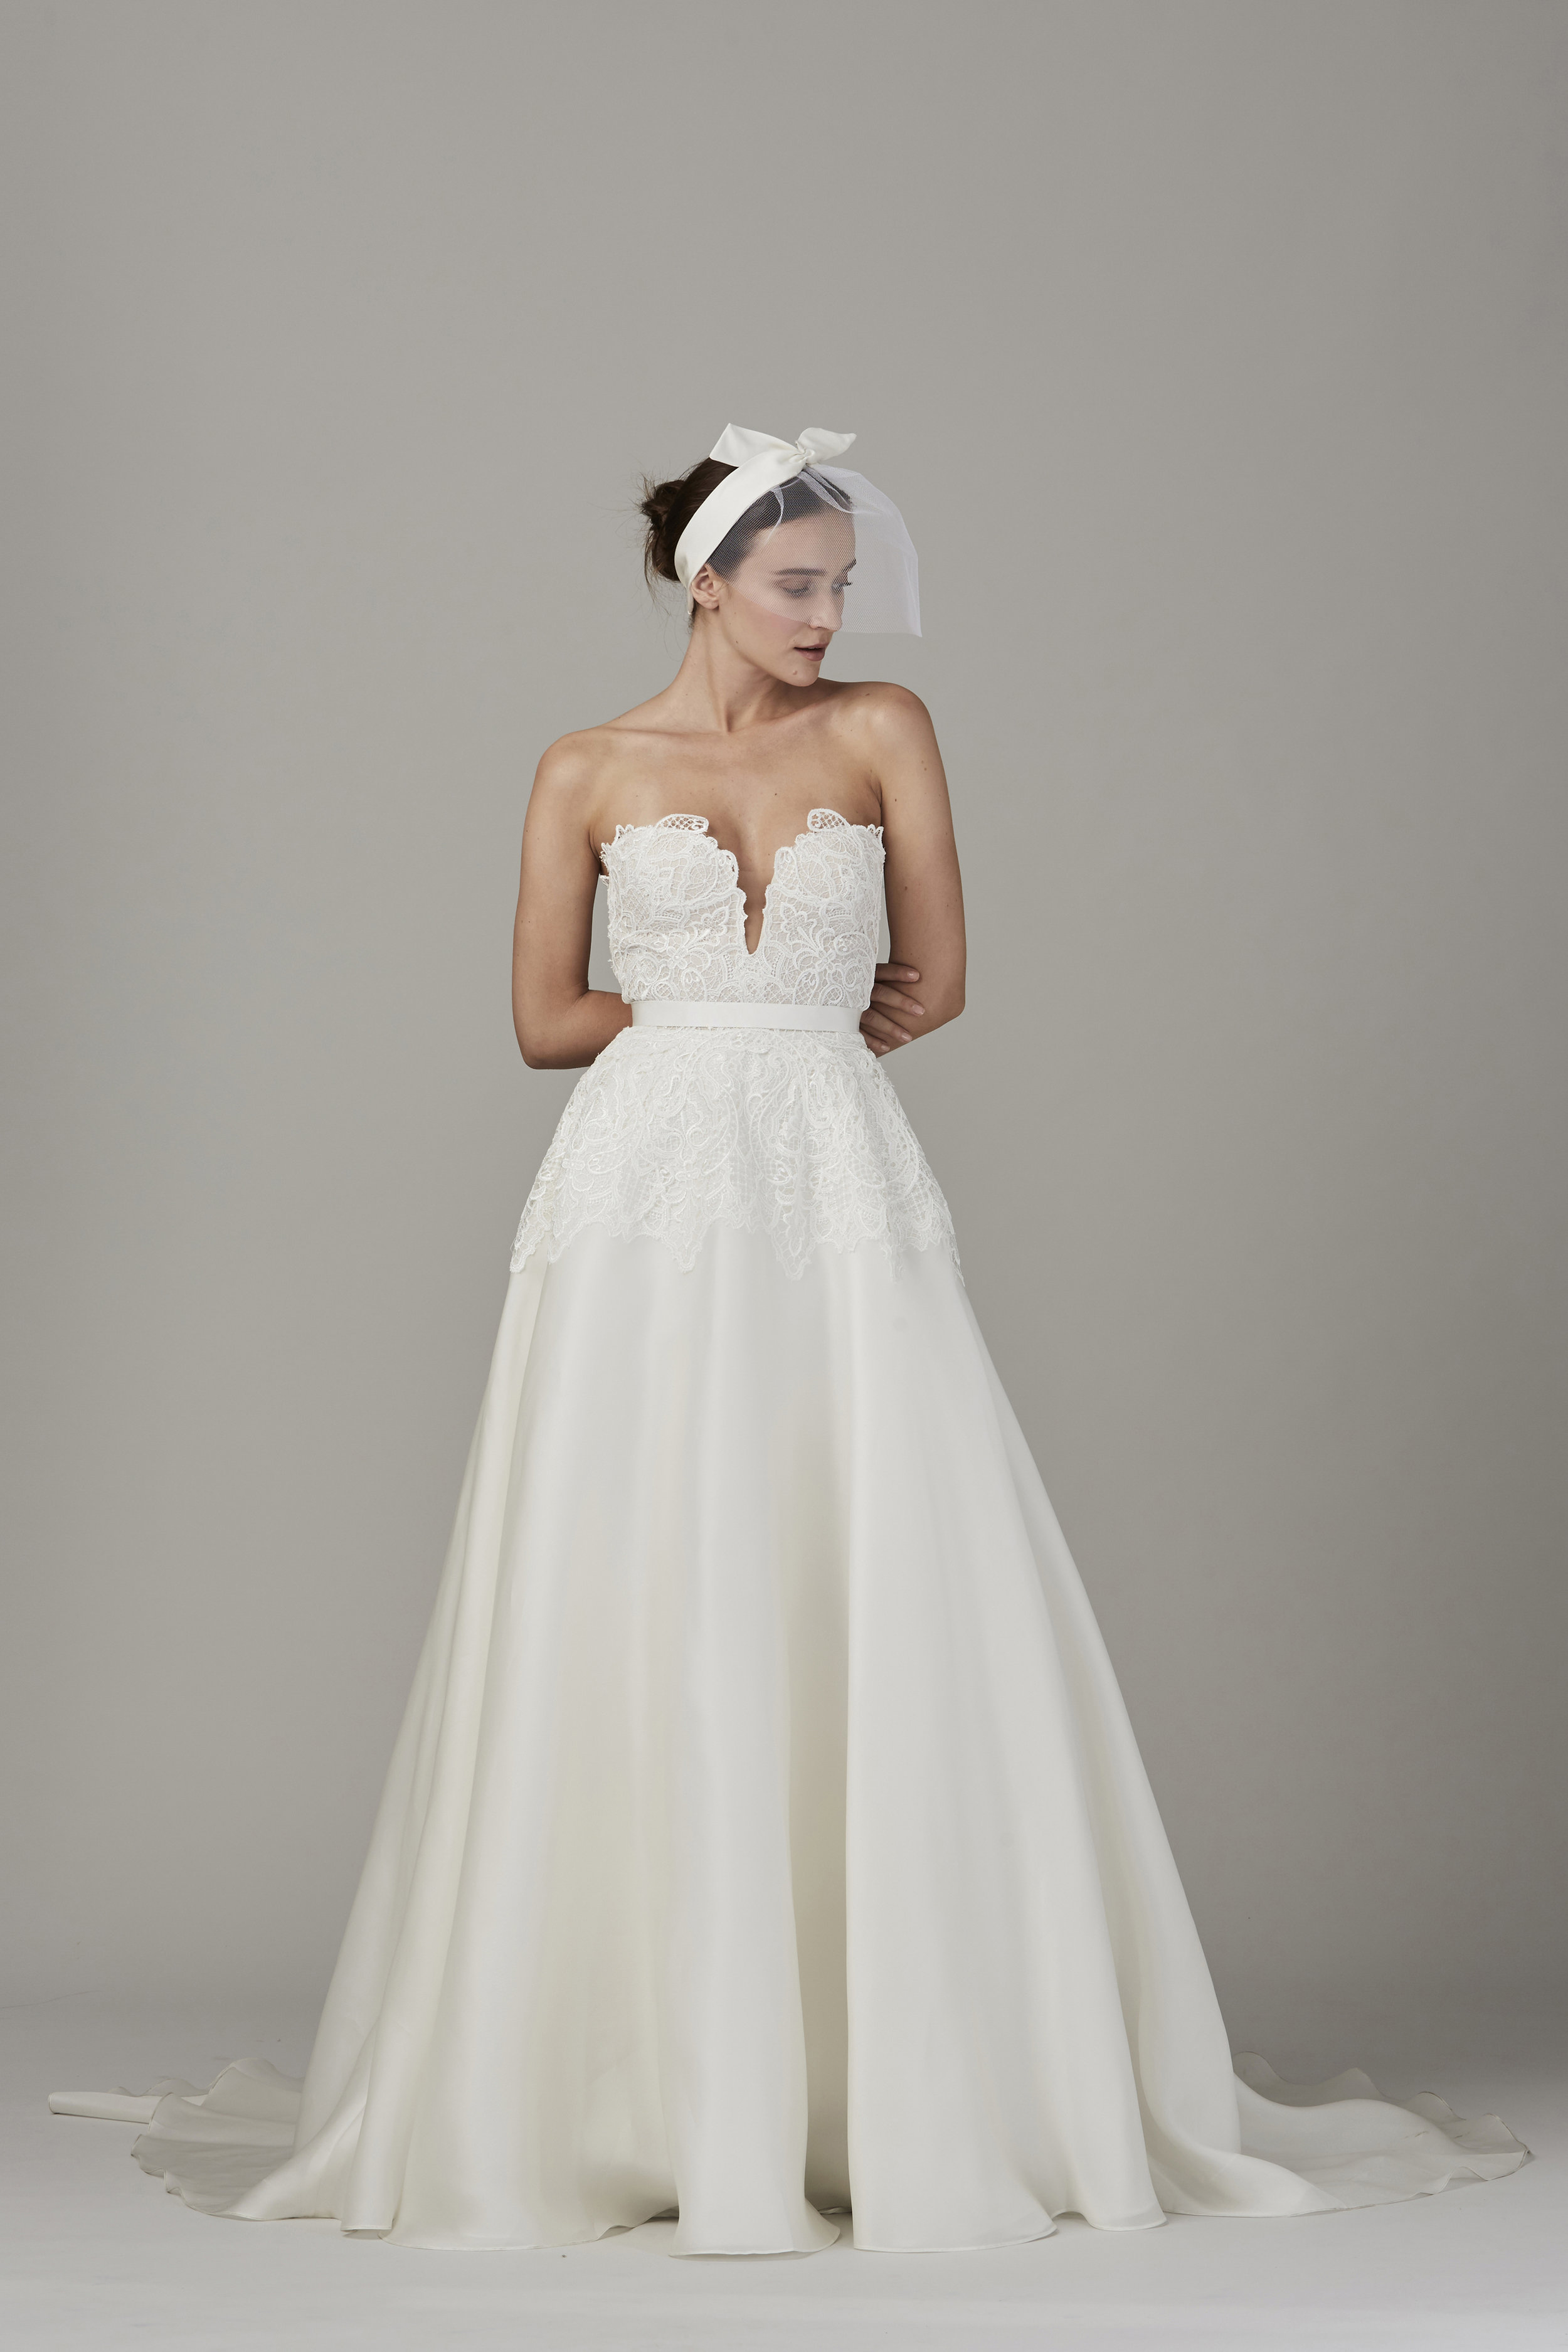 THE PENINSULA $5,695 50% OFF,  NOW $2,847.50  SIZE 8